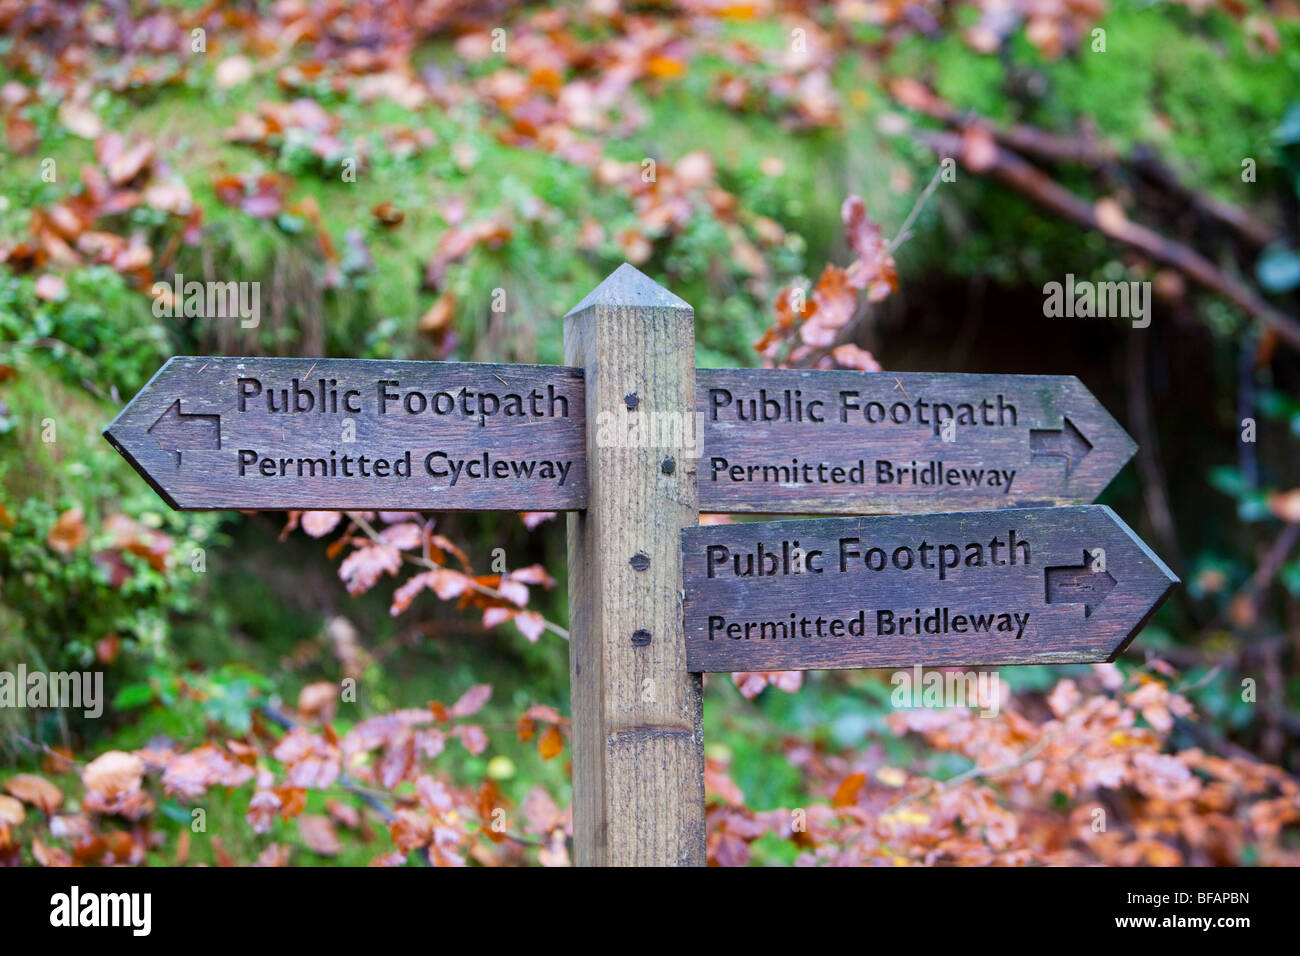 A permitted bridleway and footpath sign in the Lake District, UK - Stock Image